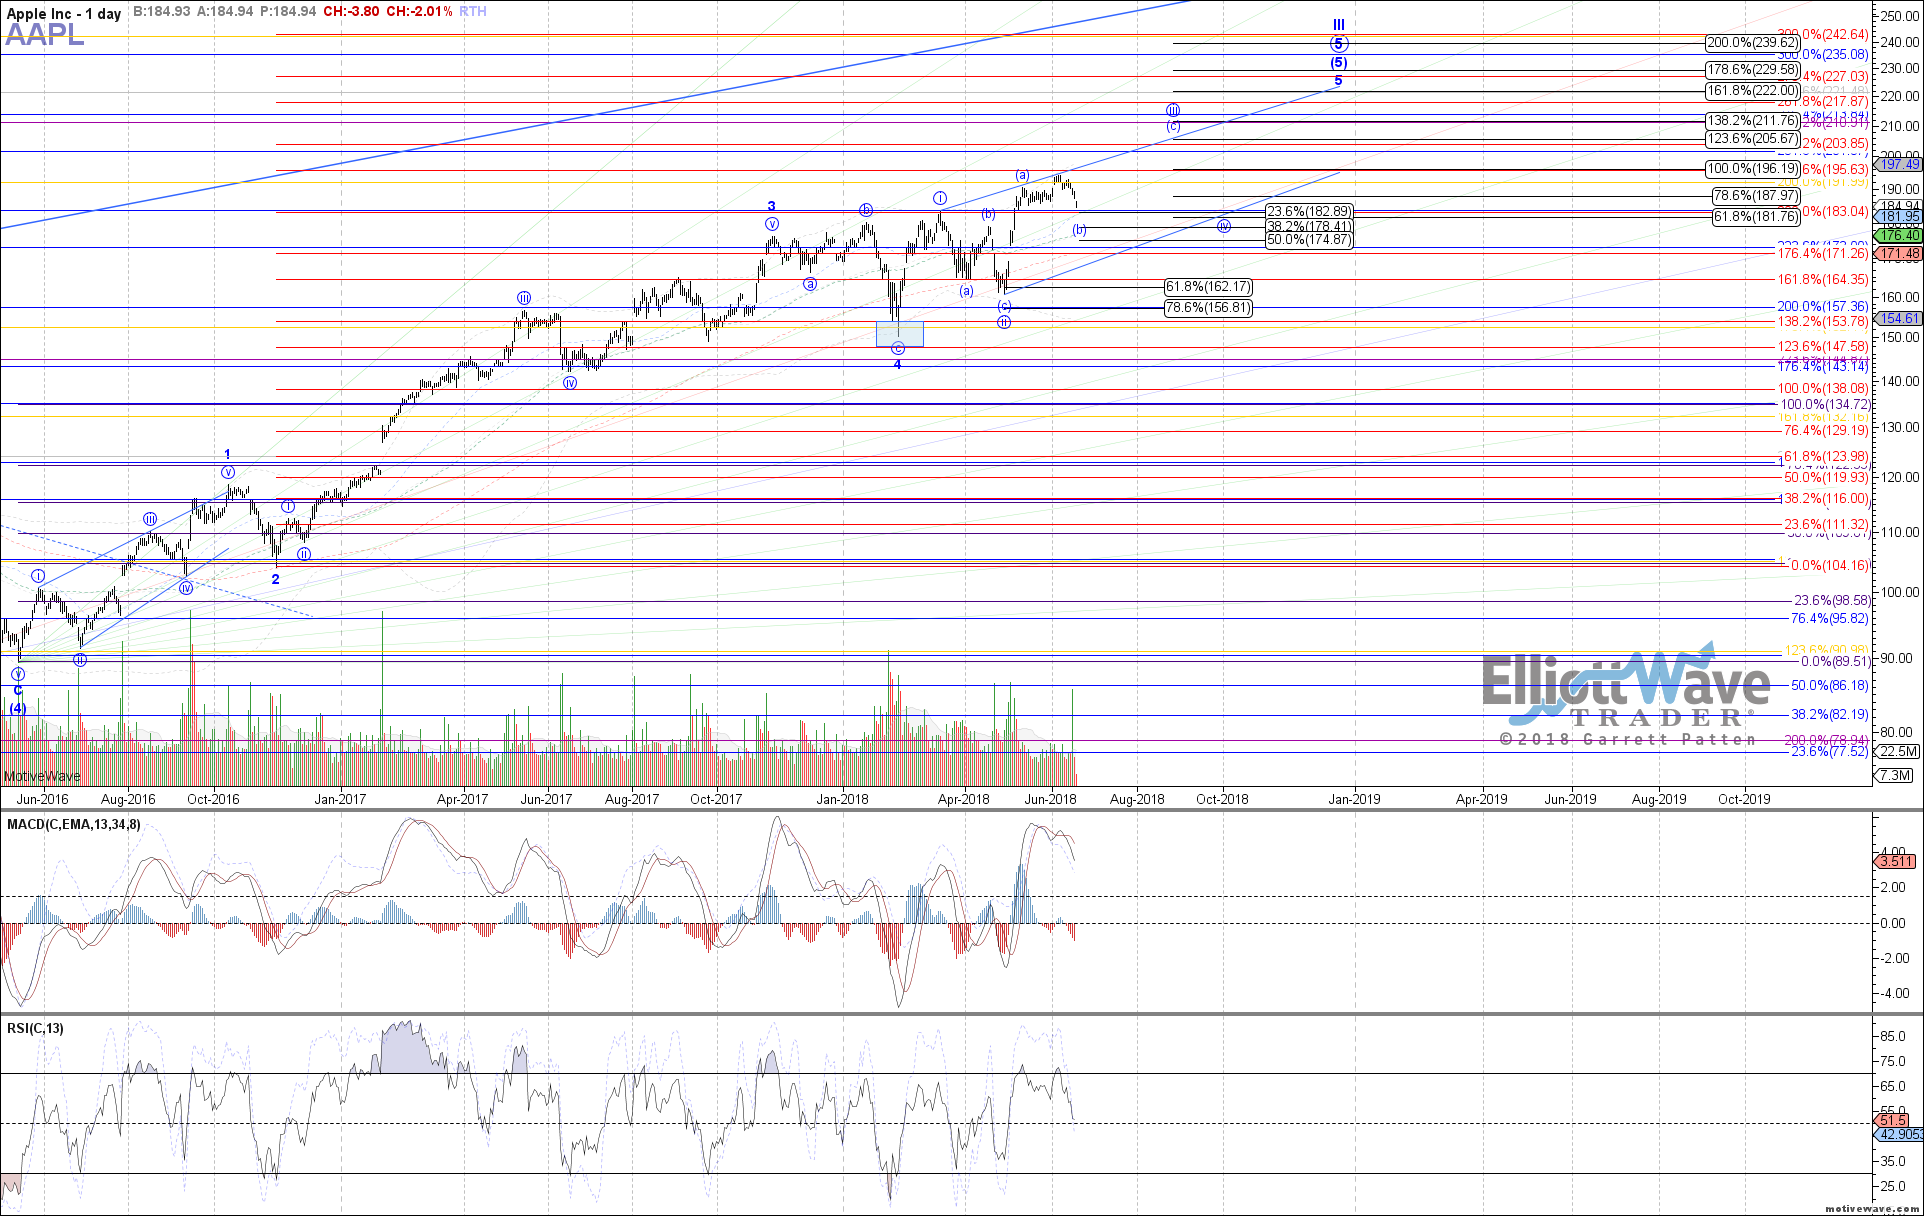 AAPL - Primary Analysis - Jun-19 0711 AM (1 day)